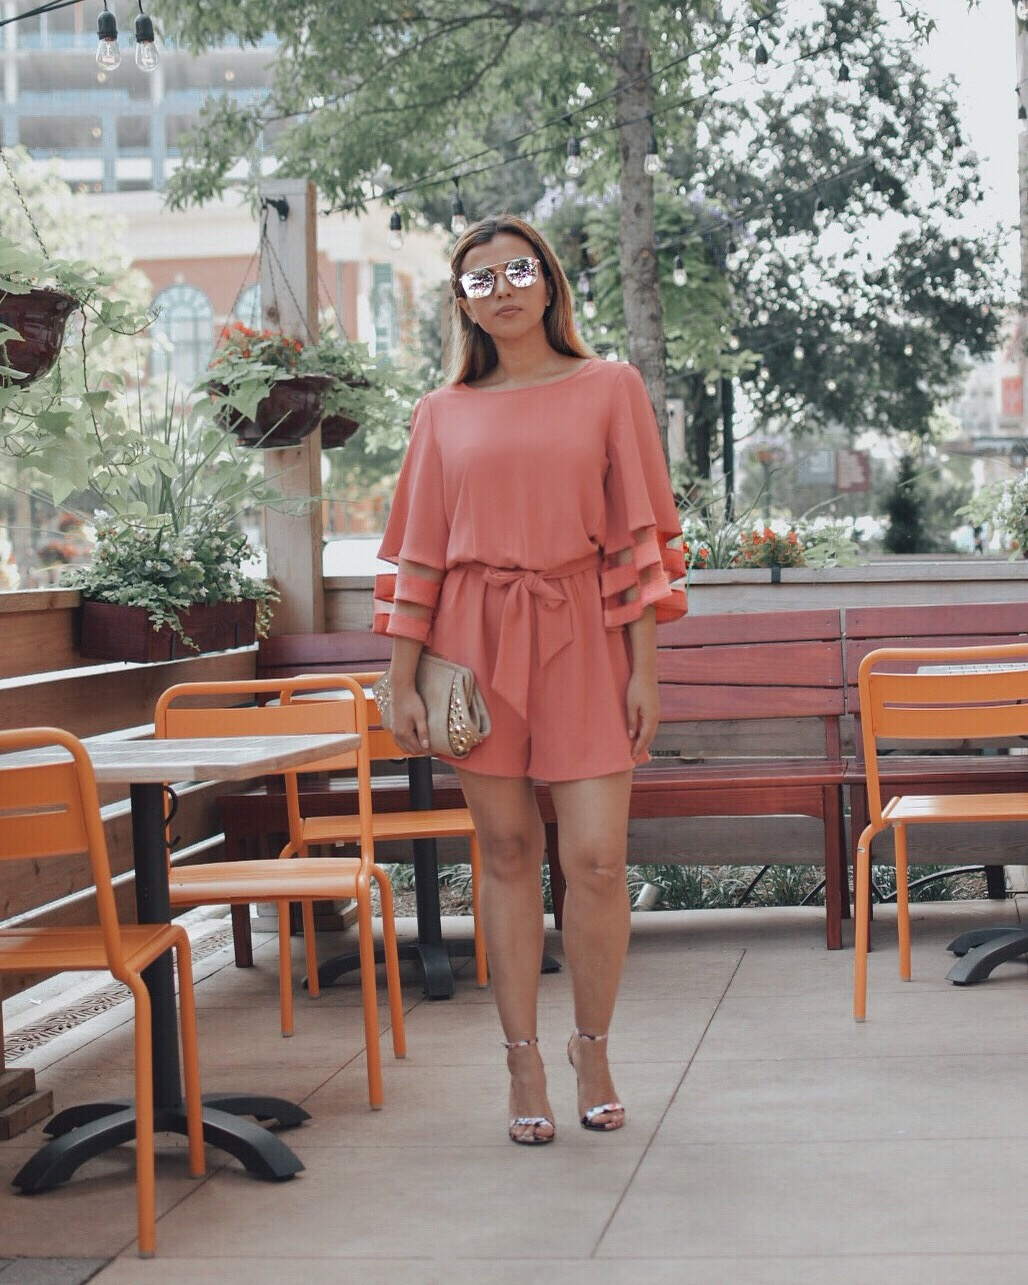 How To Wear Living Coral by Mari Estilo-pantone-lookbook store-look of the day-dcblogger-streetstyle-fashionblog-